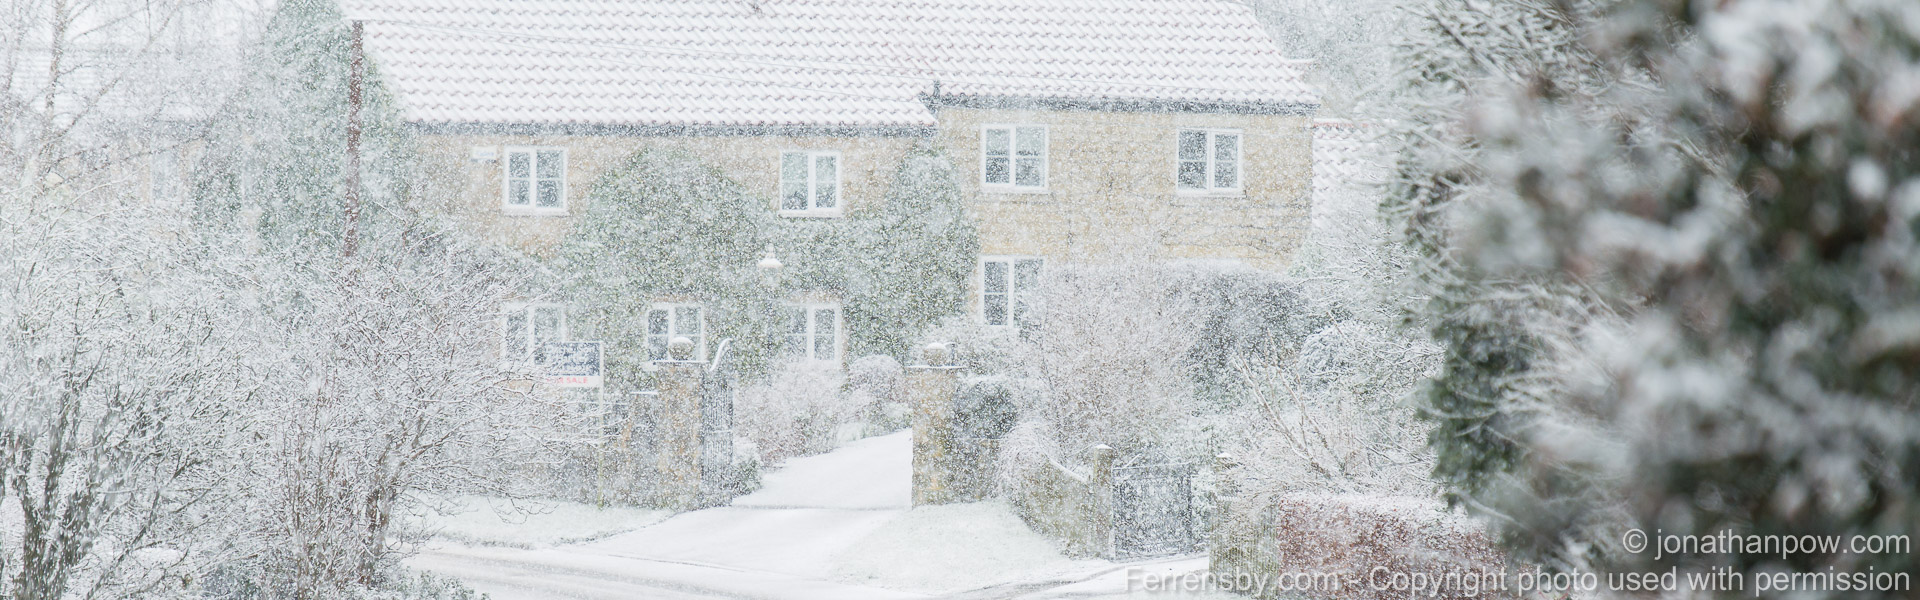 In Ferrensby, near Harrogate, North Yorkshire   WEATHER - Snow hits the North of England, following severe weather warnings from the MET office - Picture date Wednesday 2 March, 2016 (Ferrensby, North Yorkshire)    Photo credit should read: Jonathan Pow/jp@jonathanpow.com